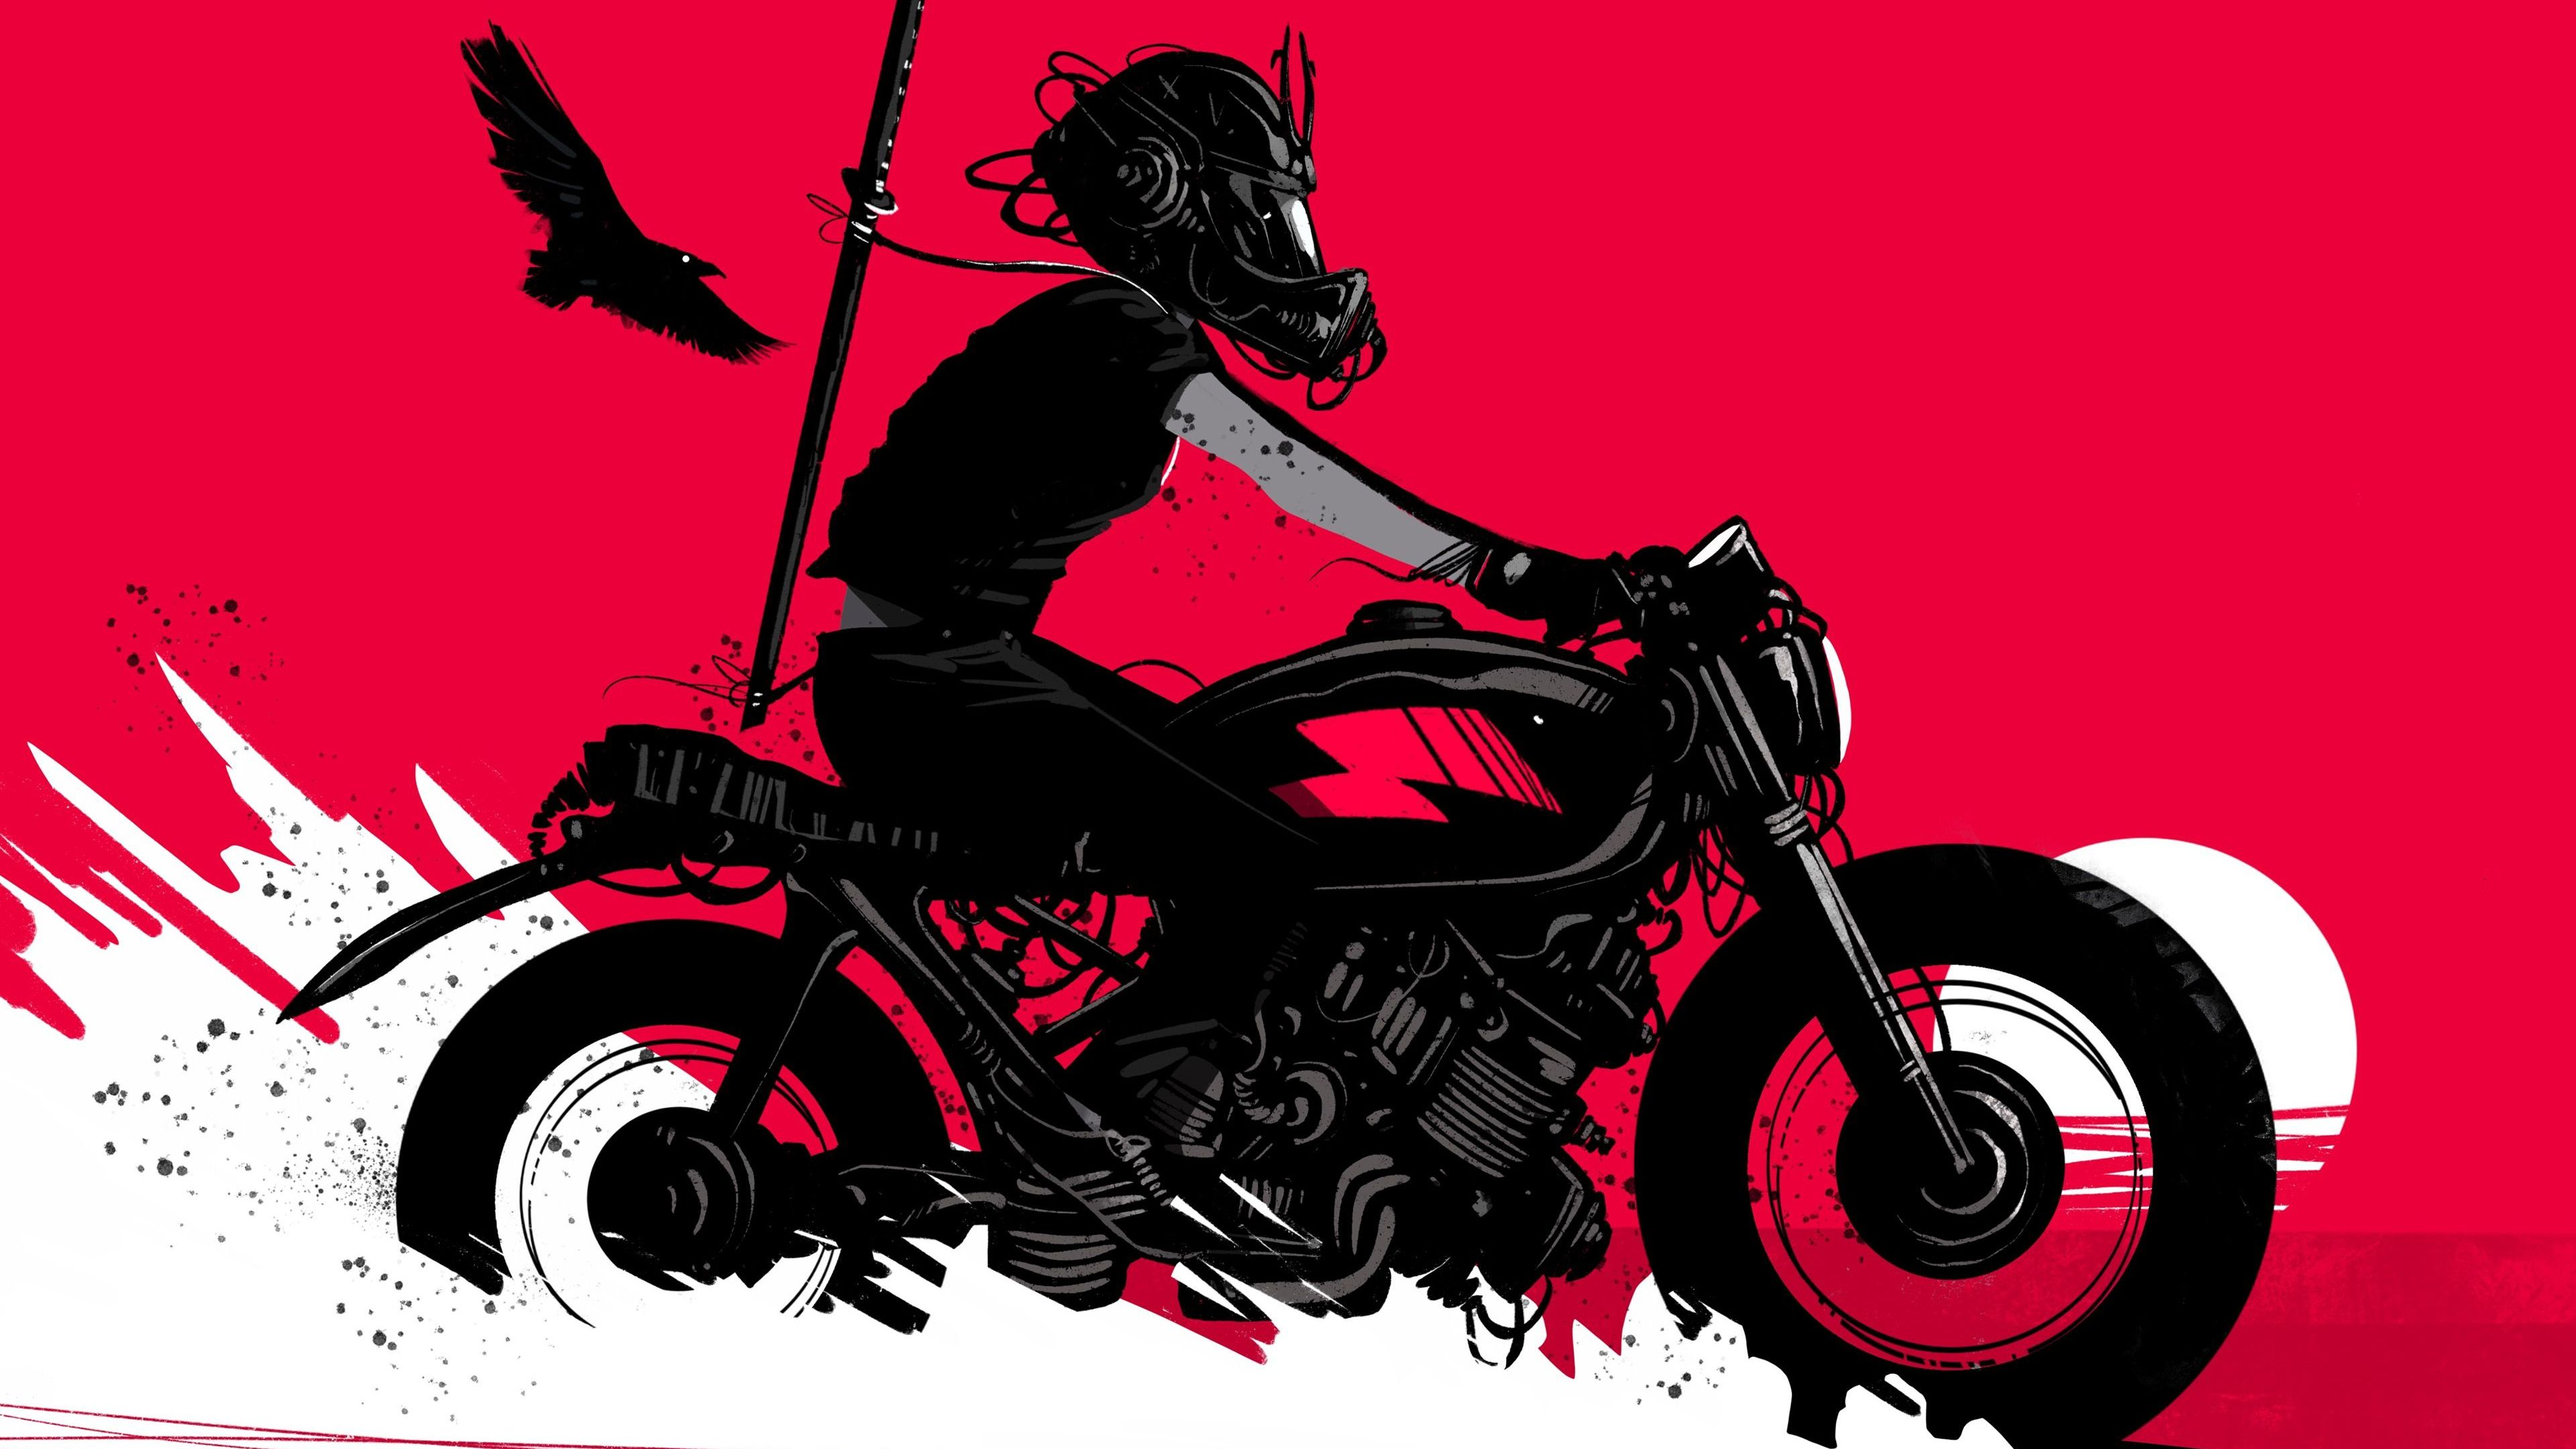 retro rider on a bike sunset 1540755068 - Retro Rider On A Bike Sunset - retro wallpapers, hd-wallpapers, digital art wallpapers, artwork wallpapers, artist wallpapers, 4k-wallpapers